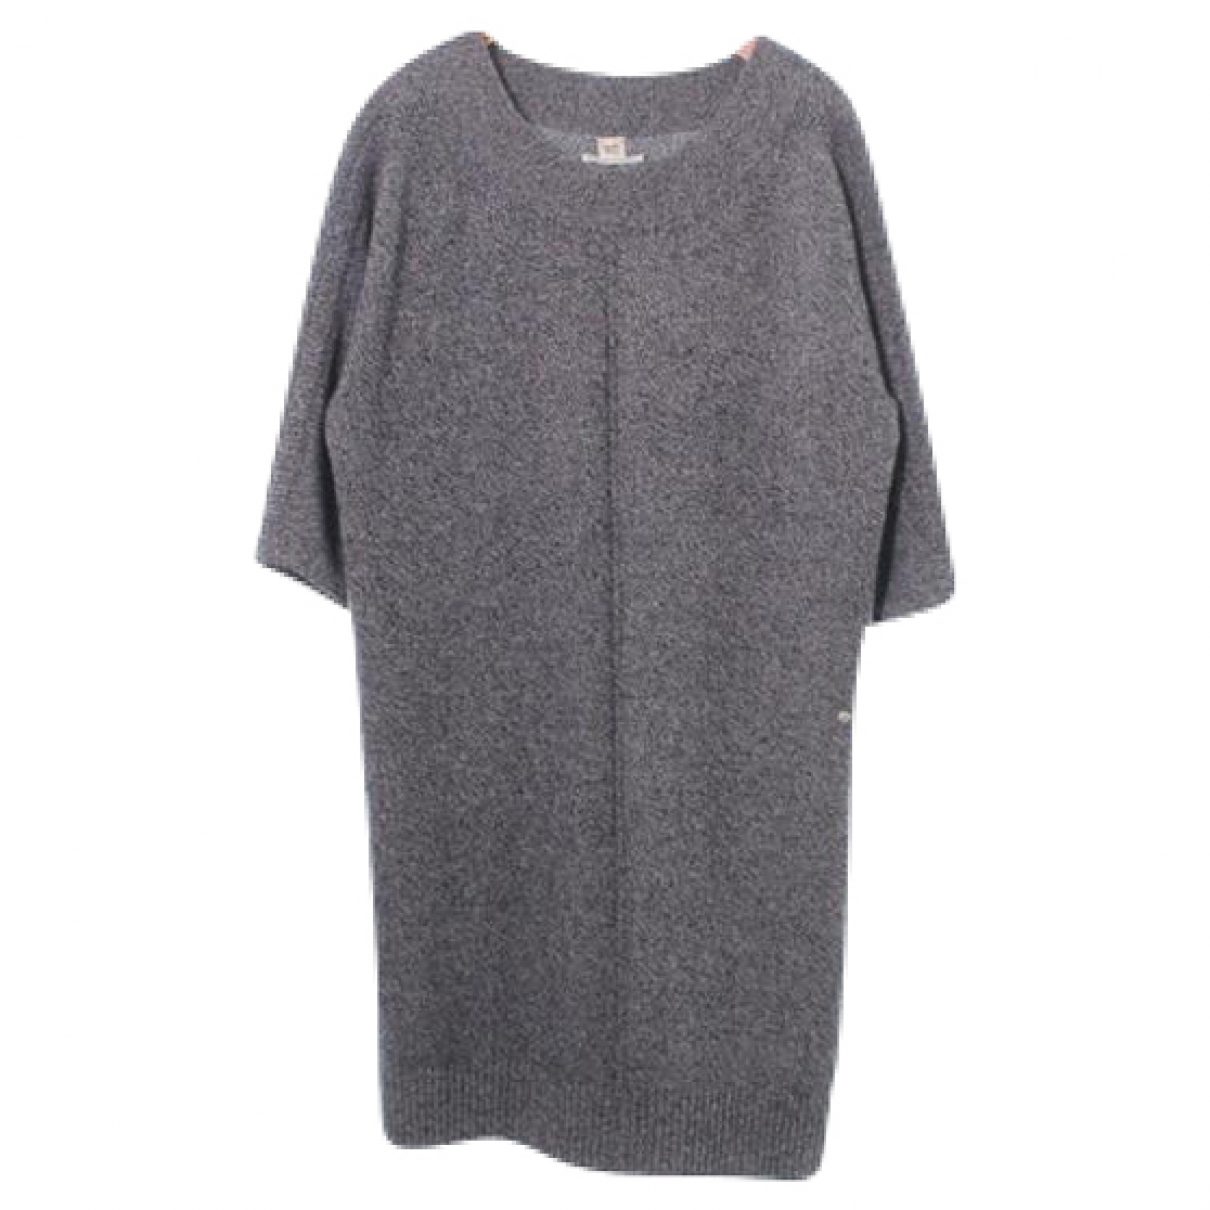 Hermès \N Grey Cashmere dress for Women 34 FR